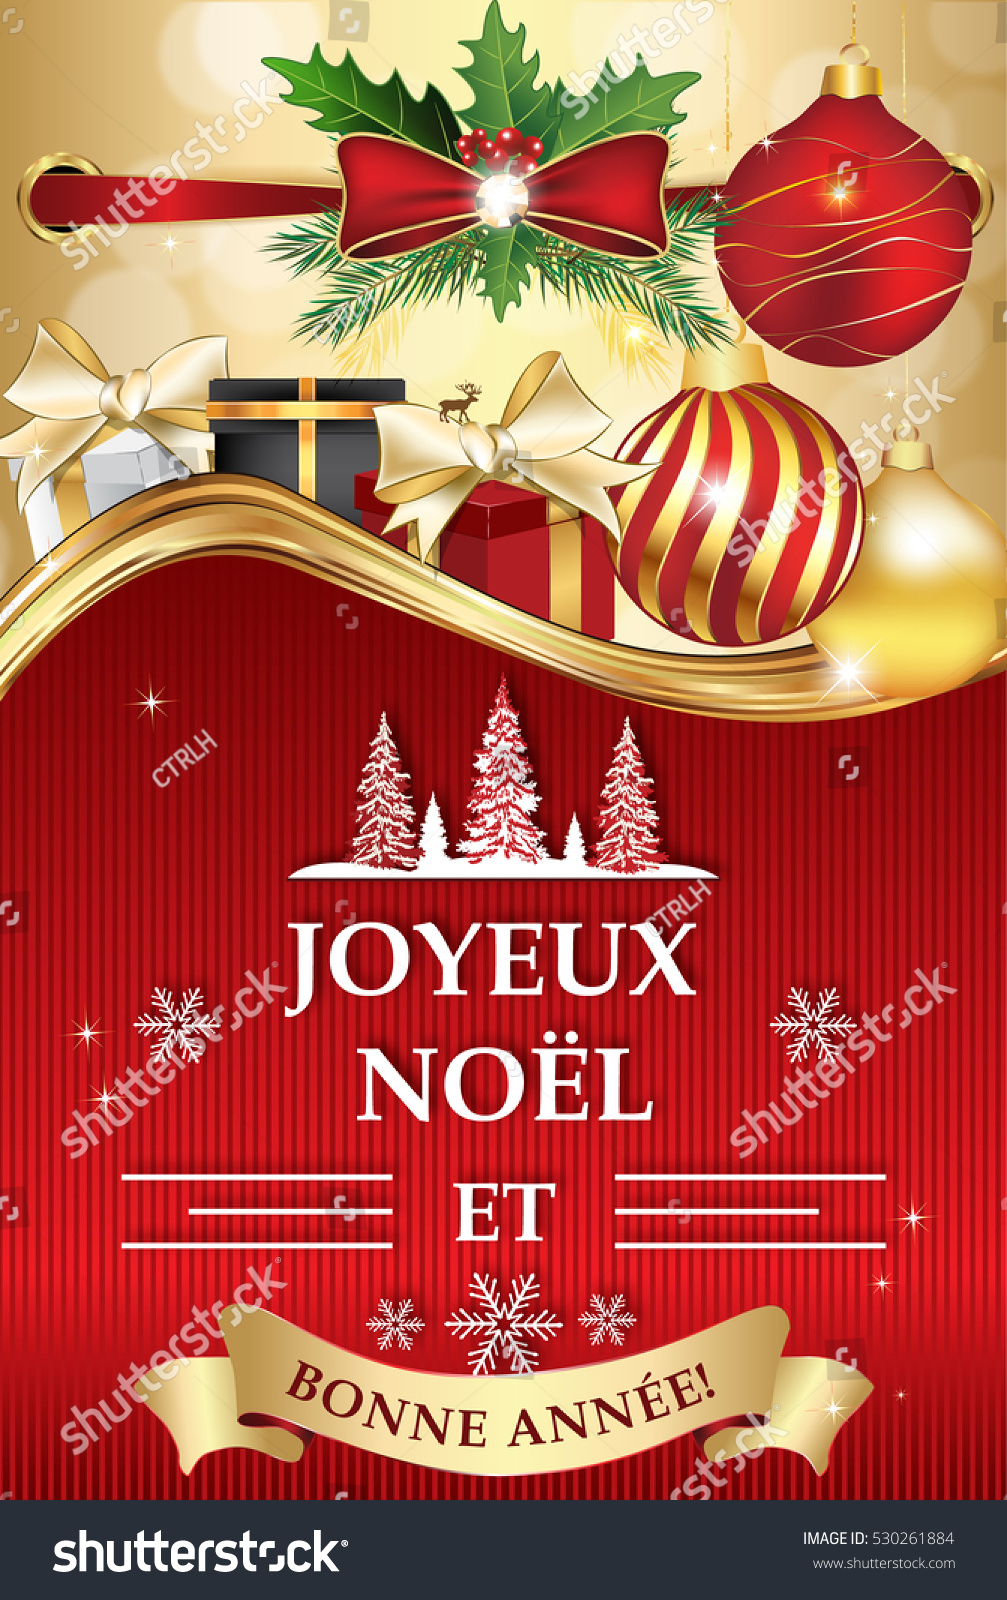 joyeux noel et une bonne annee french greeting card text translation merry